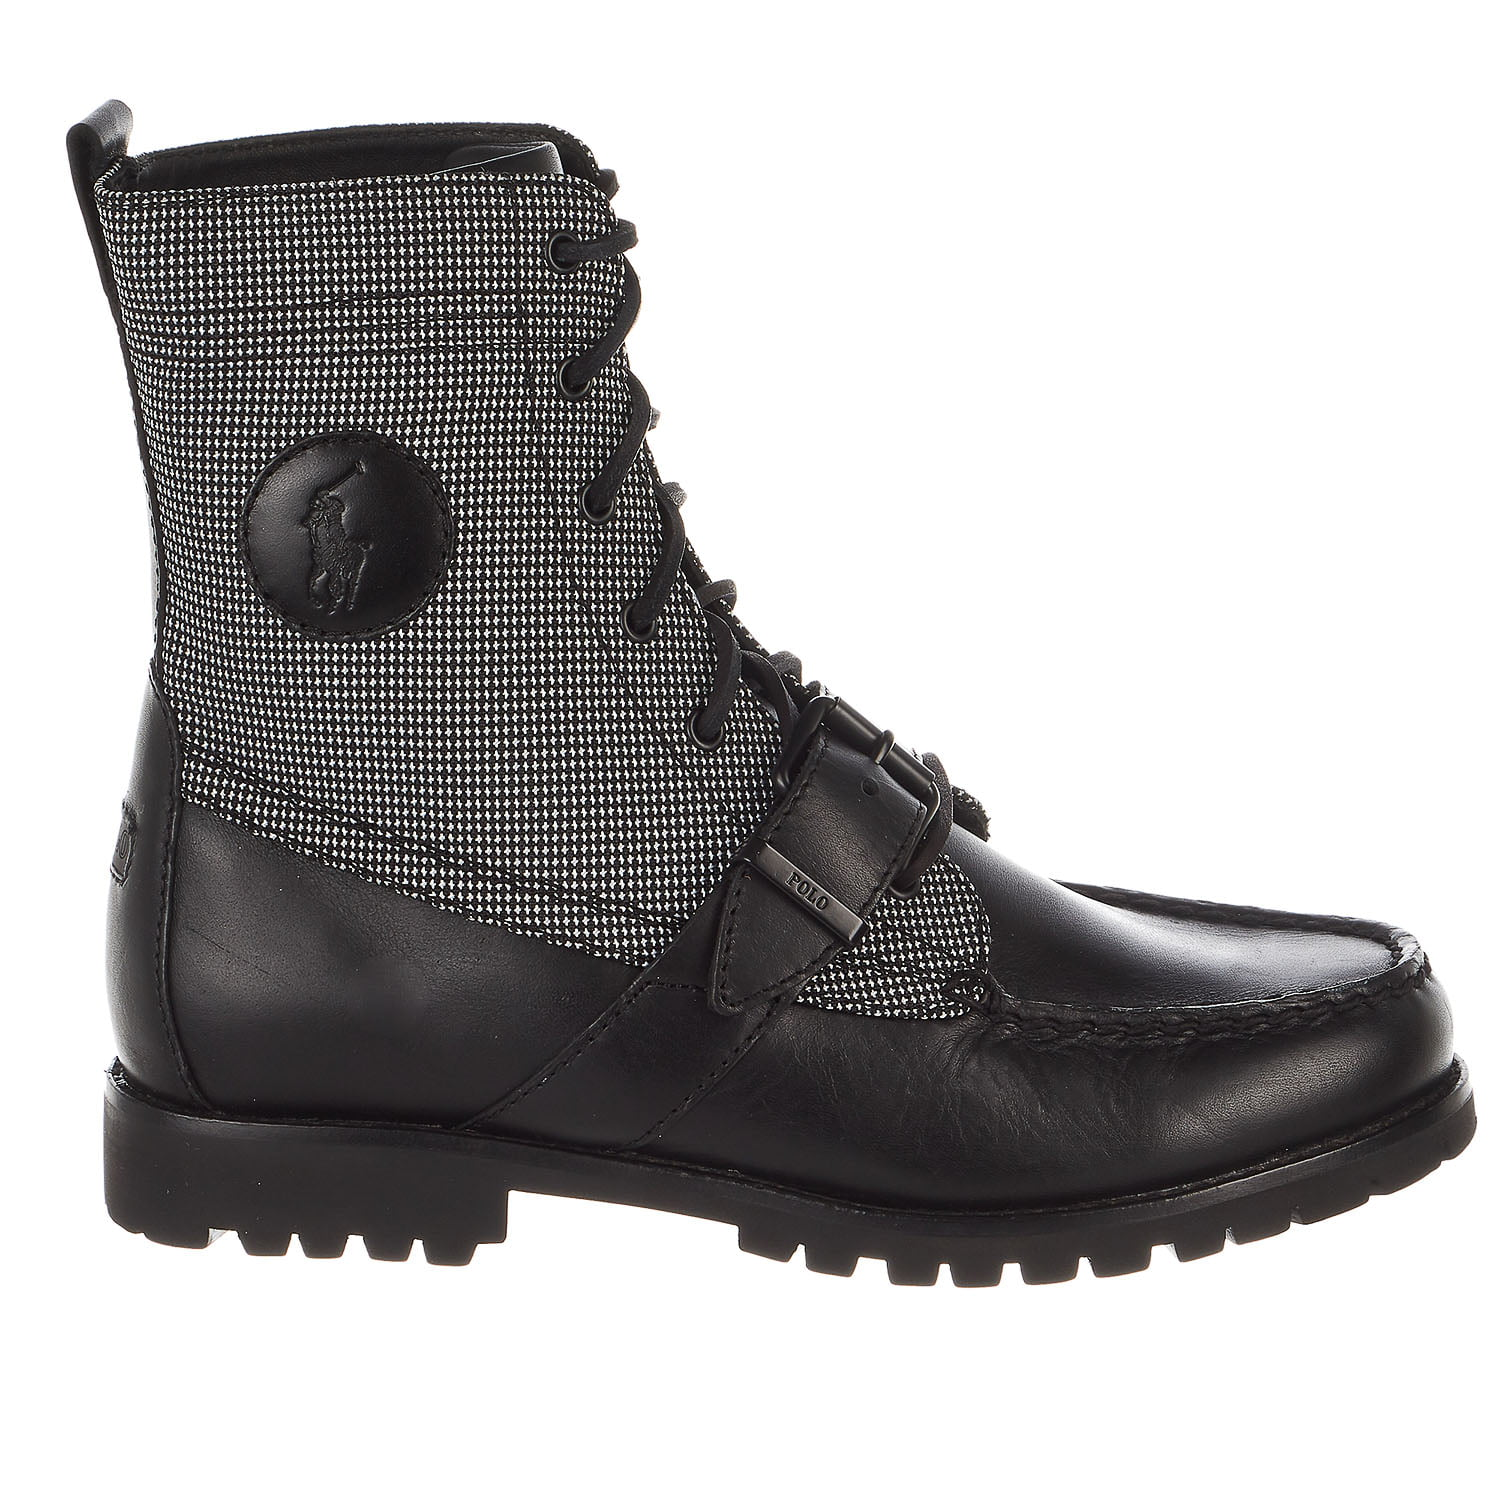 polo ralph  lauren ranger fashion botte noire / Noir  ralph -   - 8 2bdc79